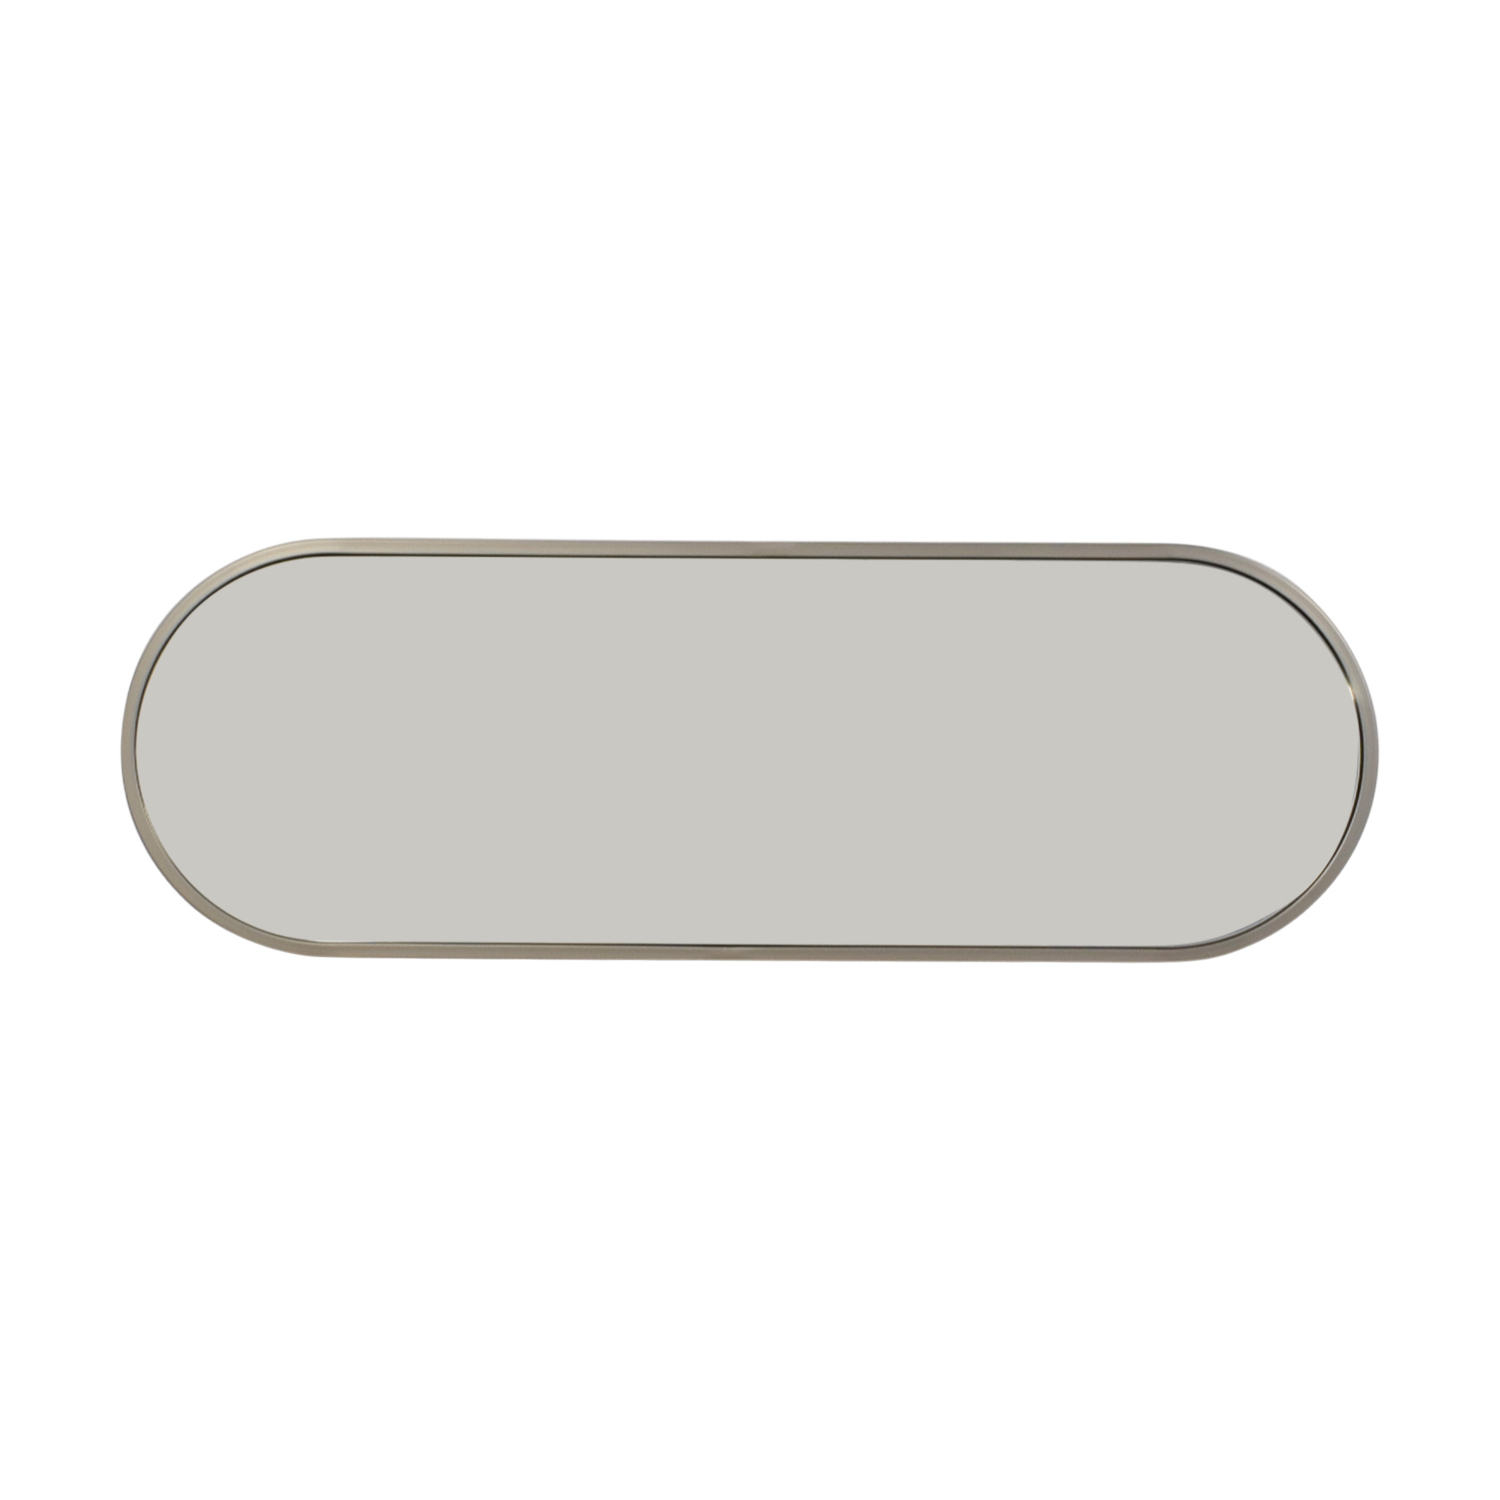 [%73% Off – West Elm West Elm Hanging Wall Mirror / Decor Regarding Fashionable Hanging Wall Mirrors|hanging Wall Mirrors Within Well Known 73% Off – West Elm West Elm Hanging Wall Mirror / Decor|2020 Hanging Wall Mirrors Pertaining To 73% Off – West Elm West Elm Hanging Wall Mirror / Decor|best And Newest 73% Off – West Elm West Elm Hanging Wall Mirror / Decor Within Hanging Wall Mirrors%] (View 12 of 20)